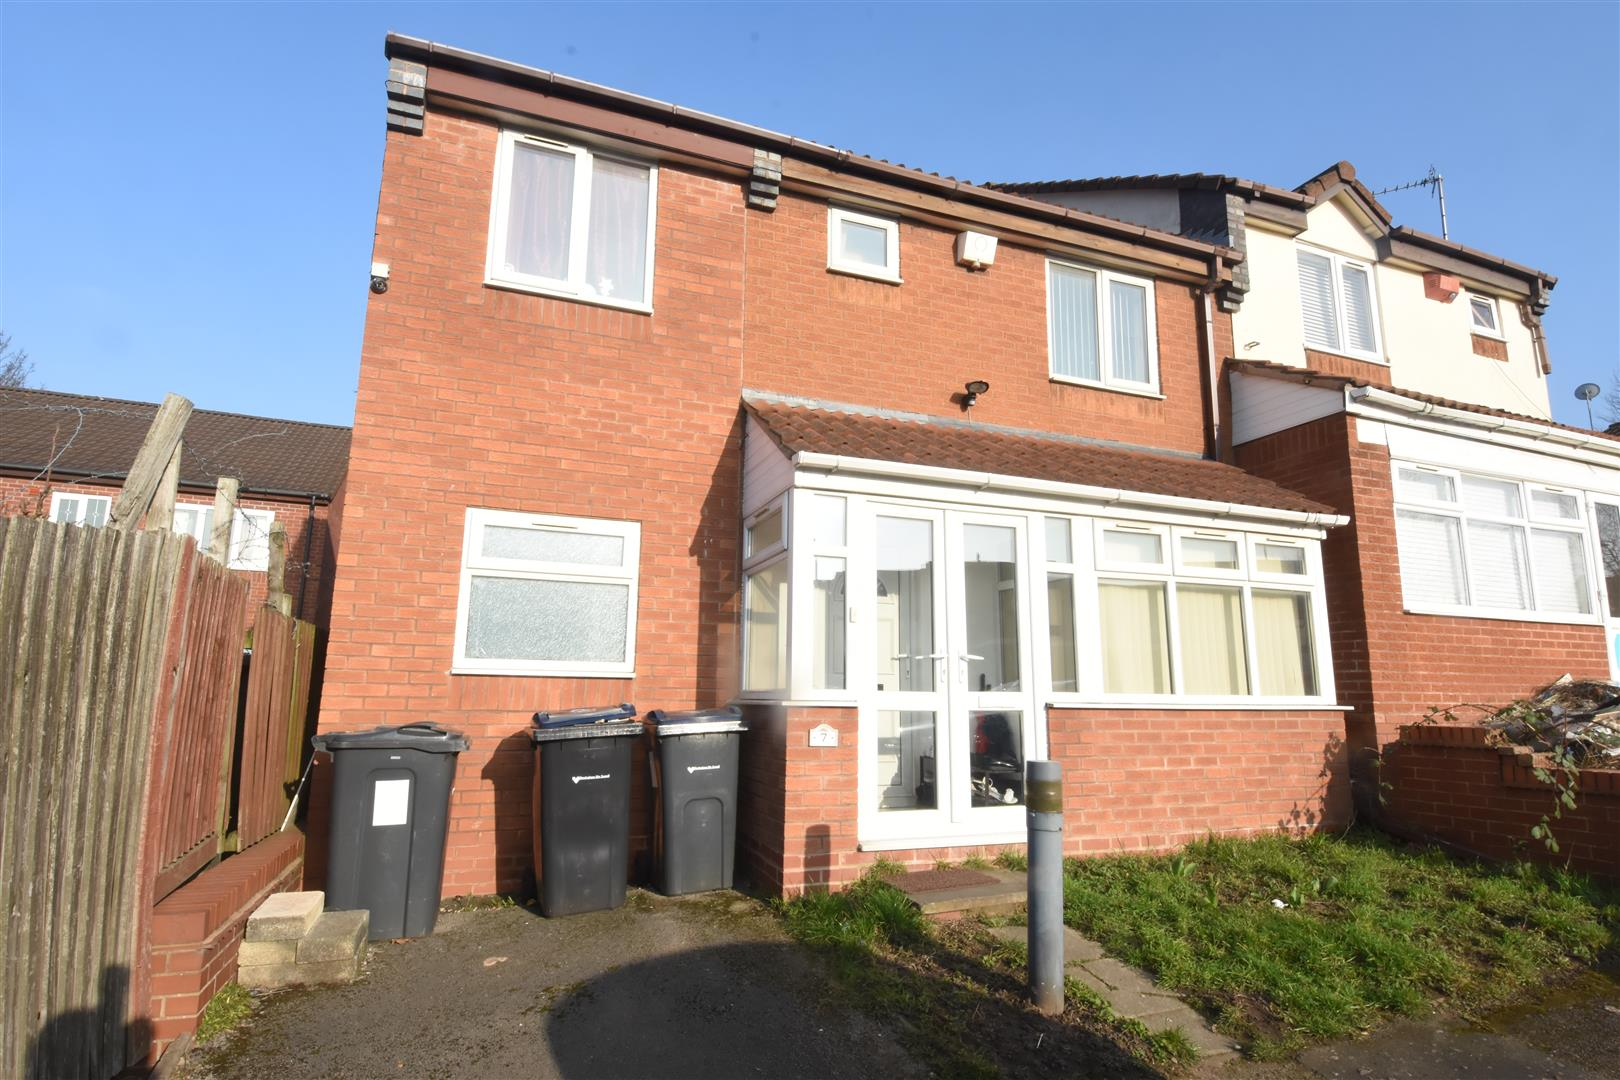 4 bed house for sale in Duddeston Drive, Birmingham, B8